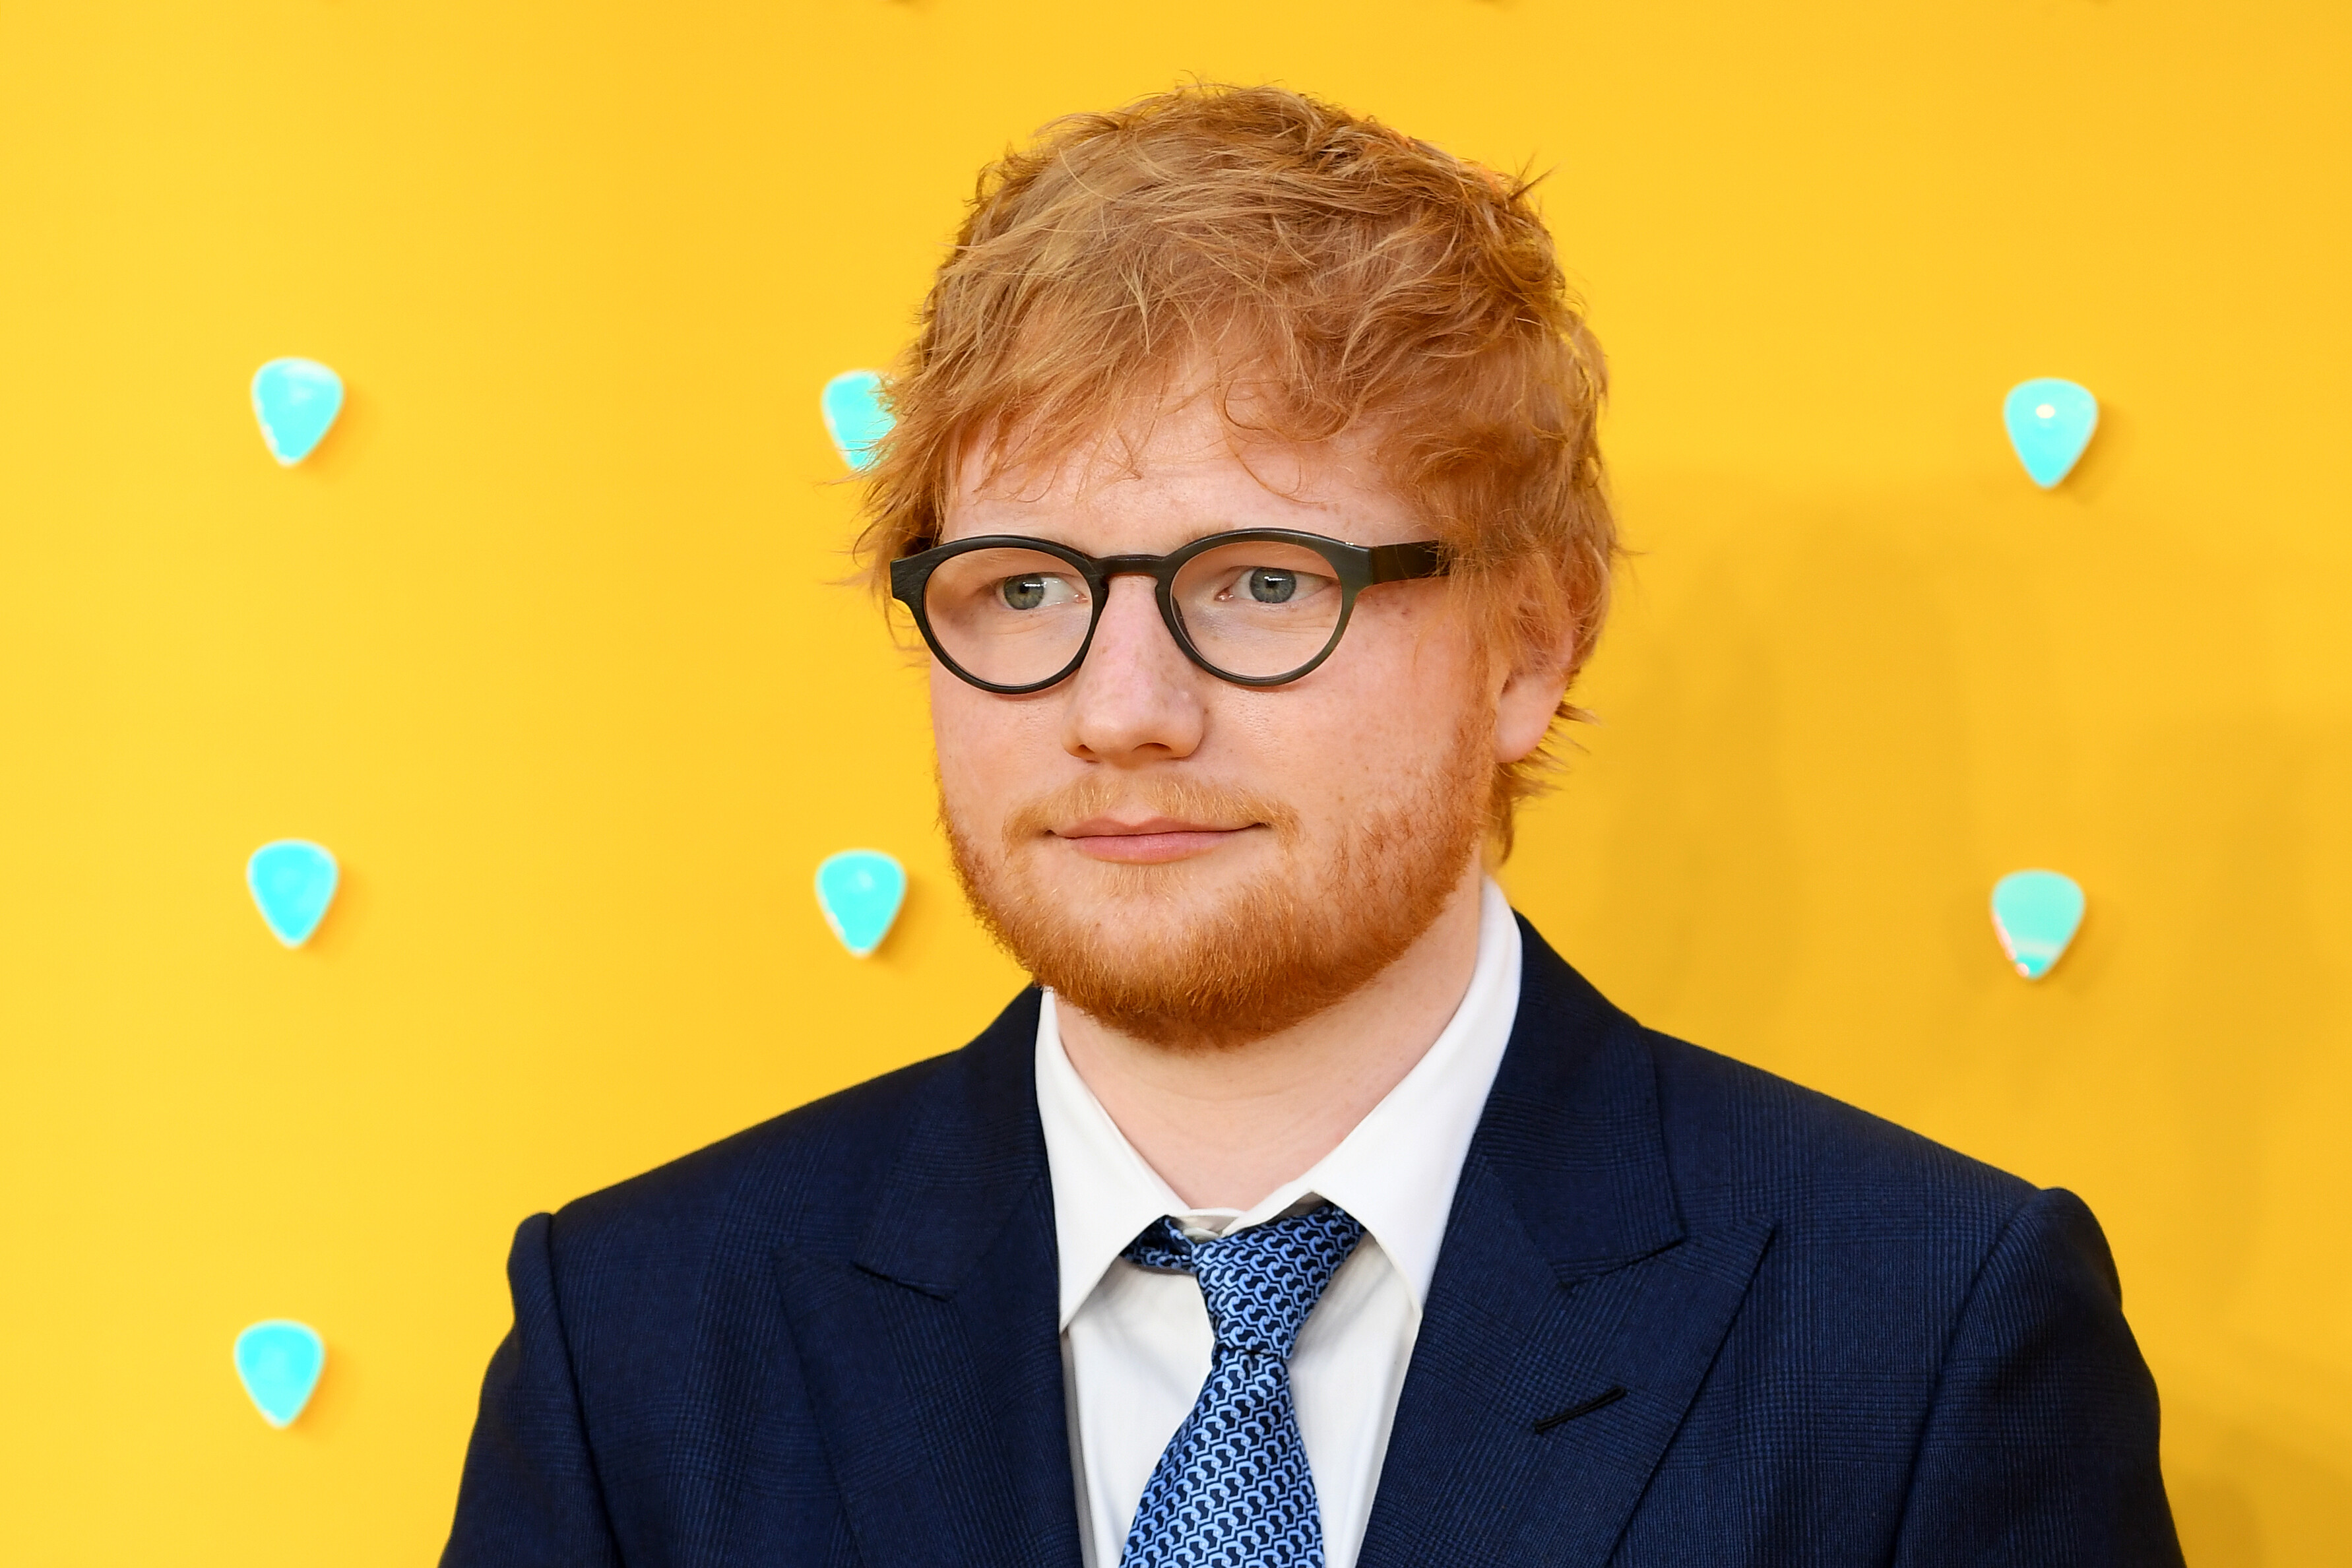 Ed Sheeran appears on 'The Voice' as mega mentor